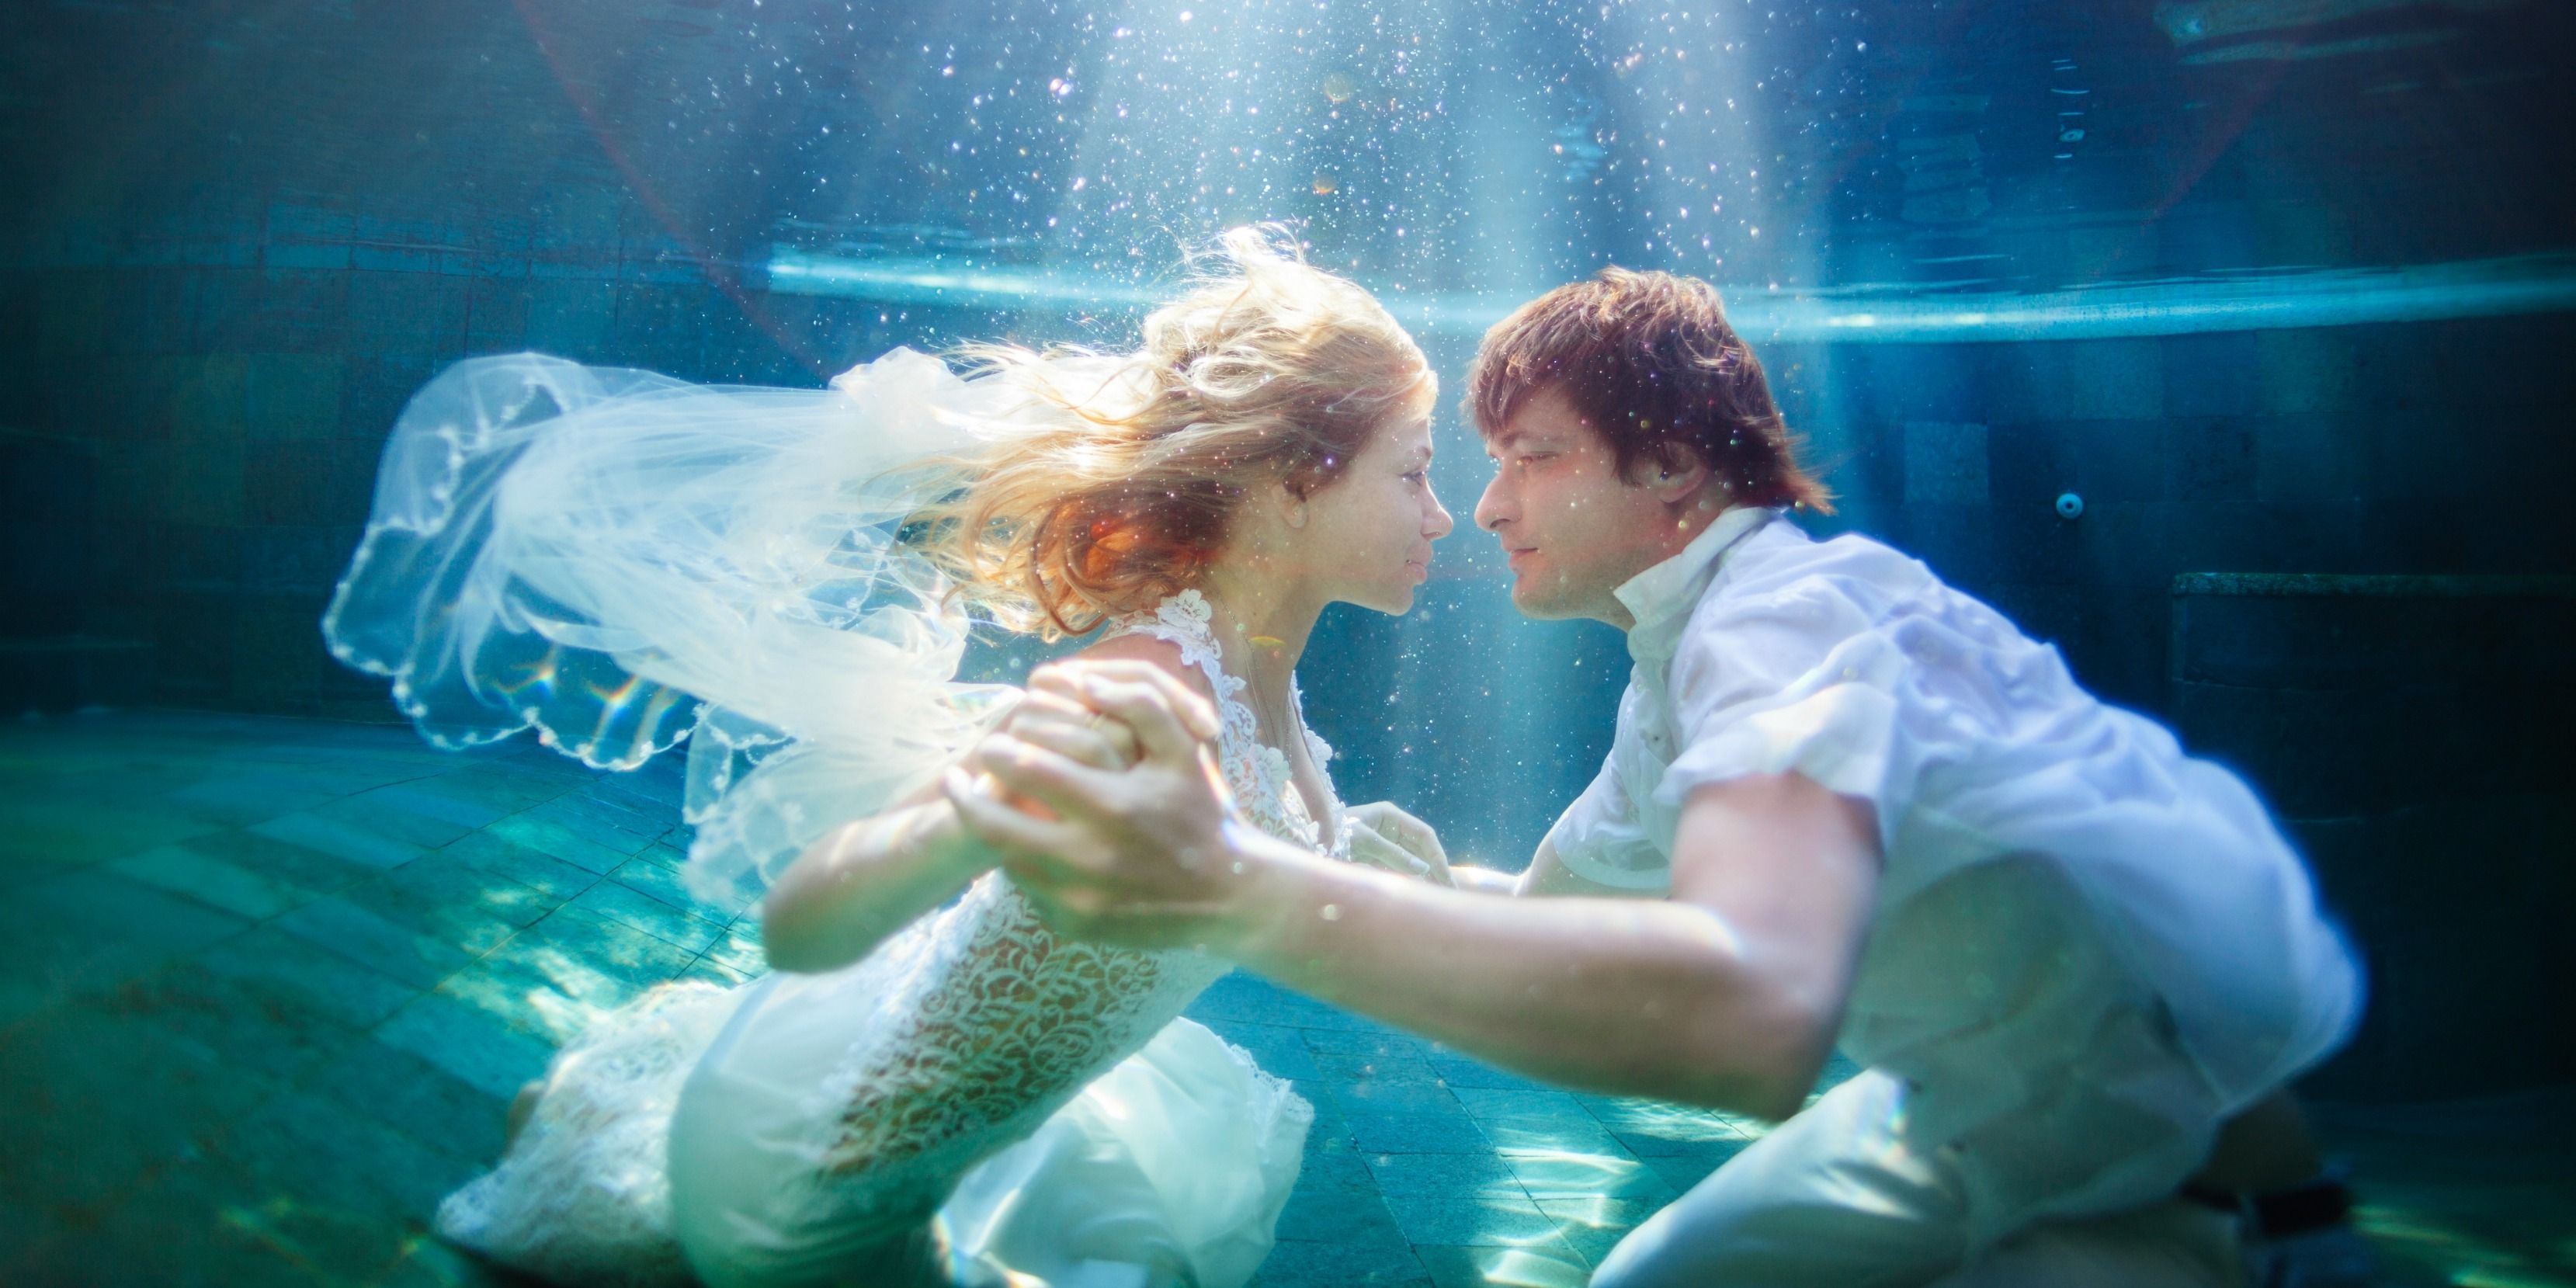 Underwater Wedding Photography Is Trending With Brides And Grooms Trash The Dress Photos